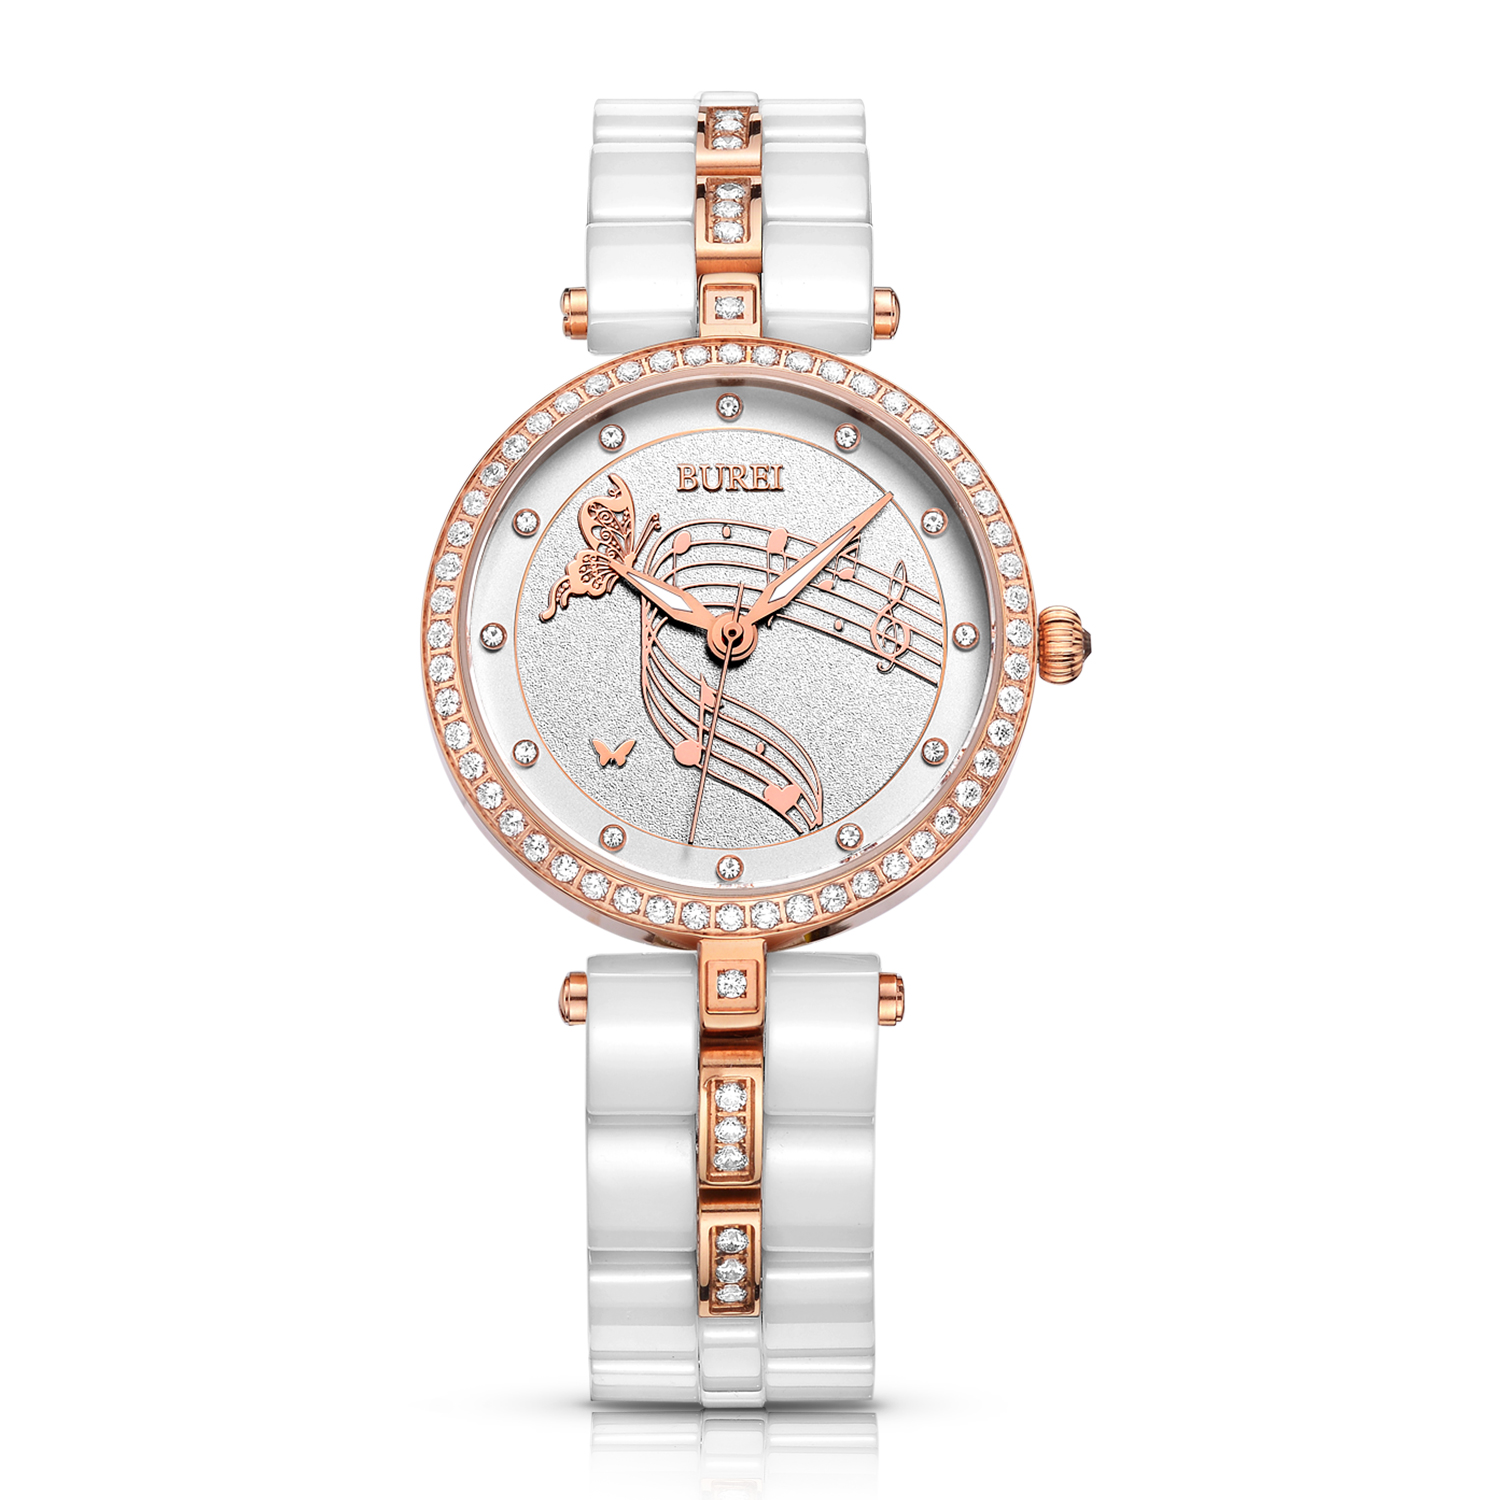 BUREI 3029 Switzerland watch women J12 series Women's Elegant  Crystal-Accented White Ceramic Watch with Rose Gold Hands vince camuto women s vc 5186chgb swarovski crystal accented gold tone multi function bracelet watch